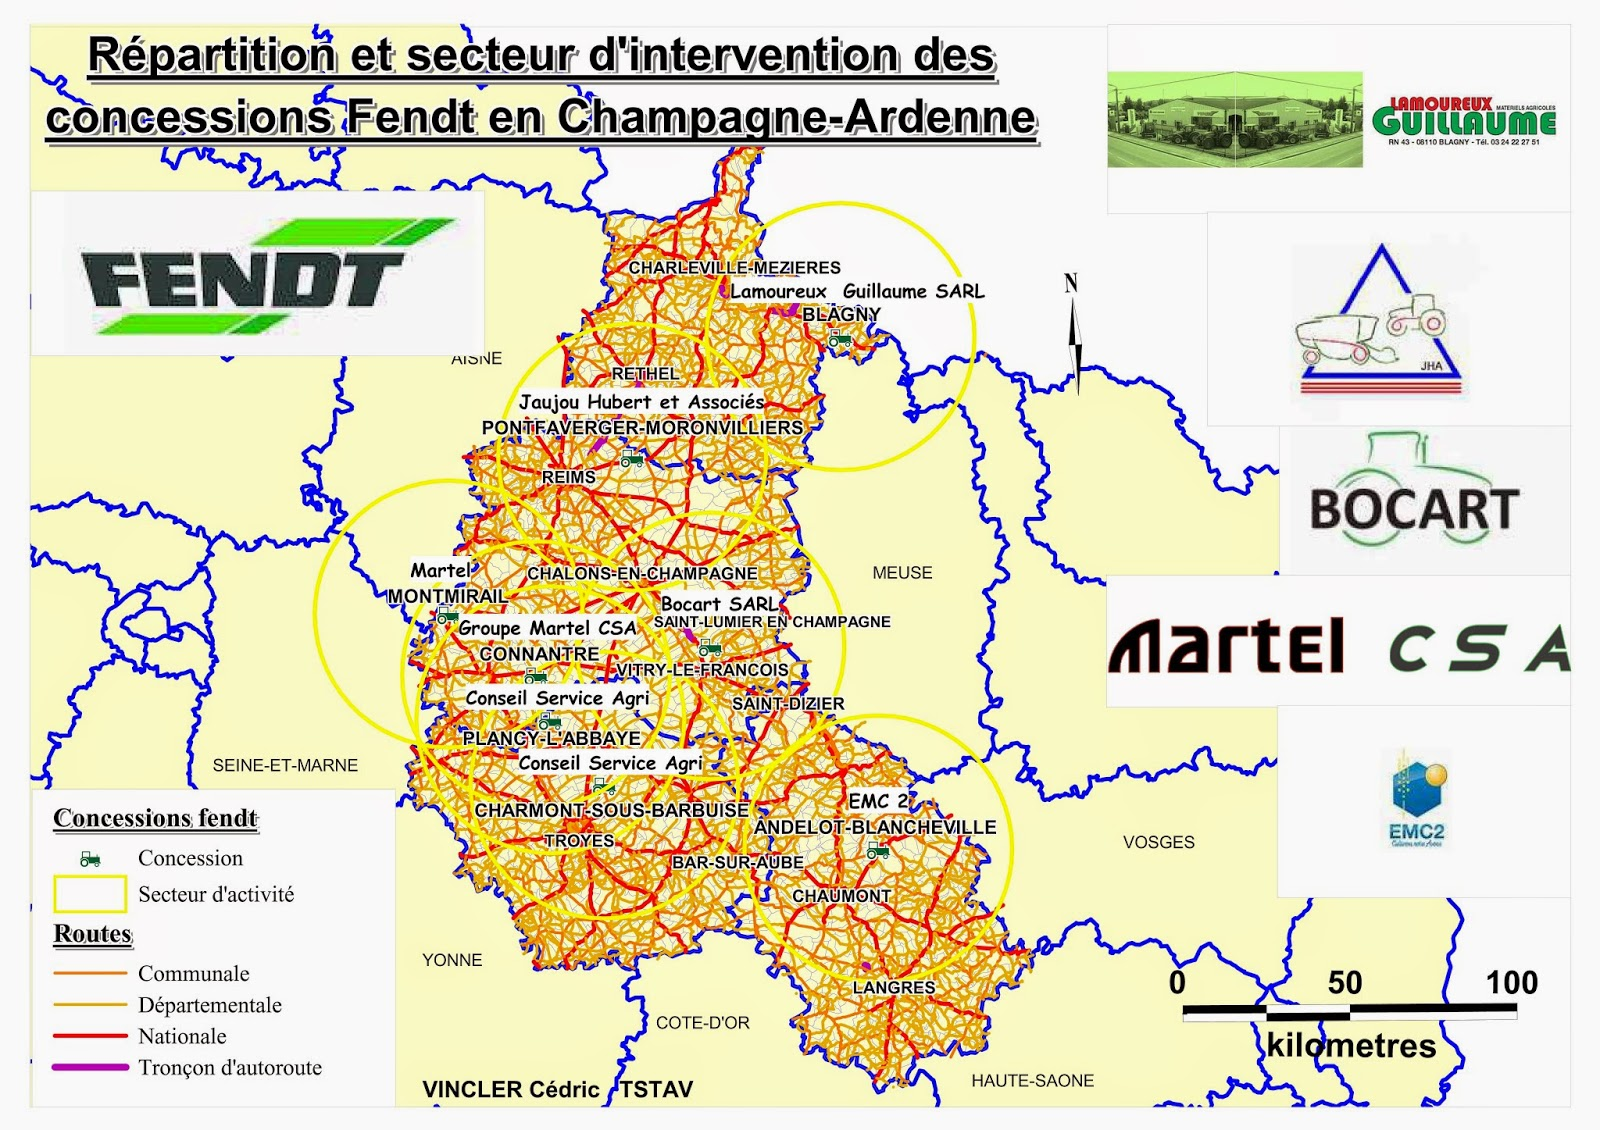 Concessionnaires agricoles en champagne ardenne for Chambre agriculture champagne ardenne